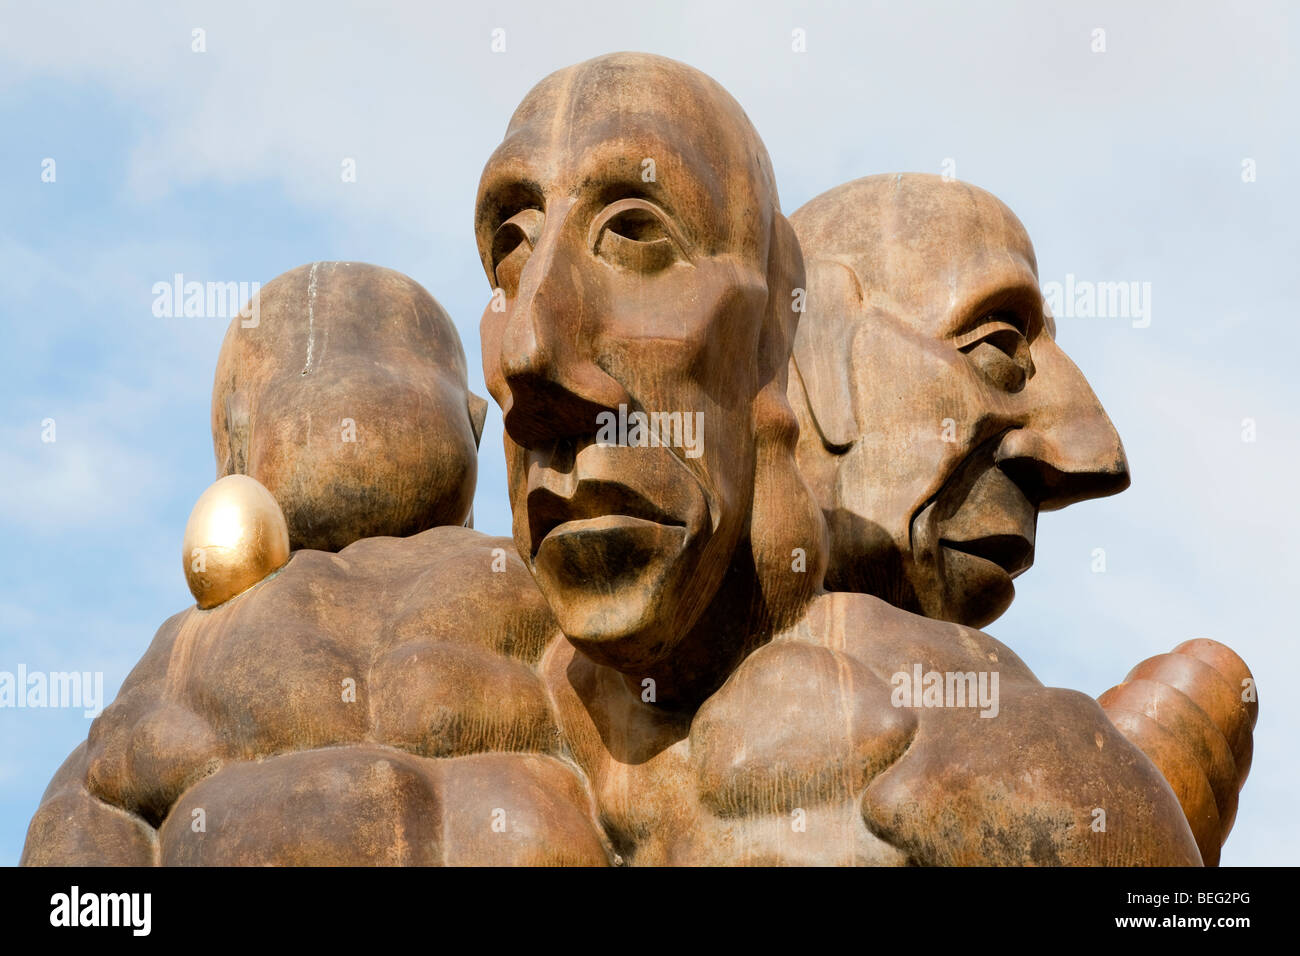 The Shadow The Traveling Companion And The Improvisor A Memorial Stock Photo Alamy